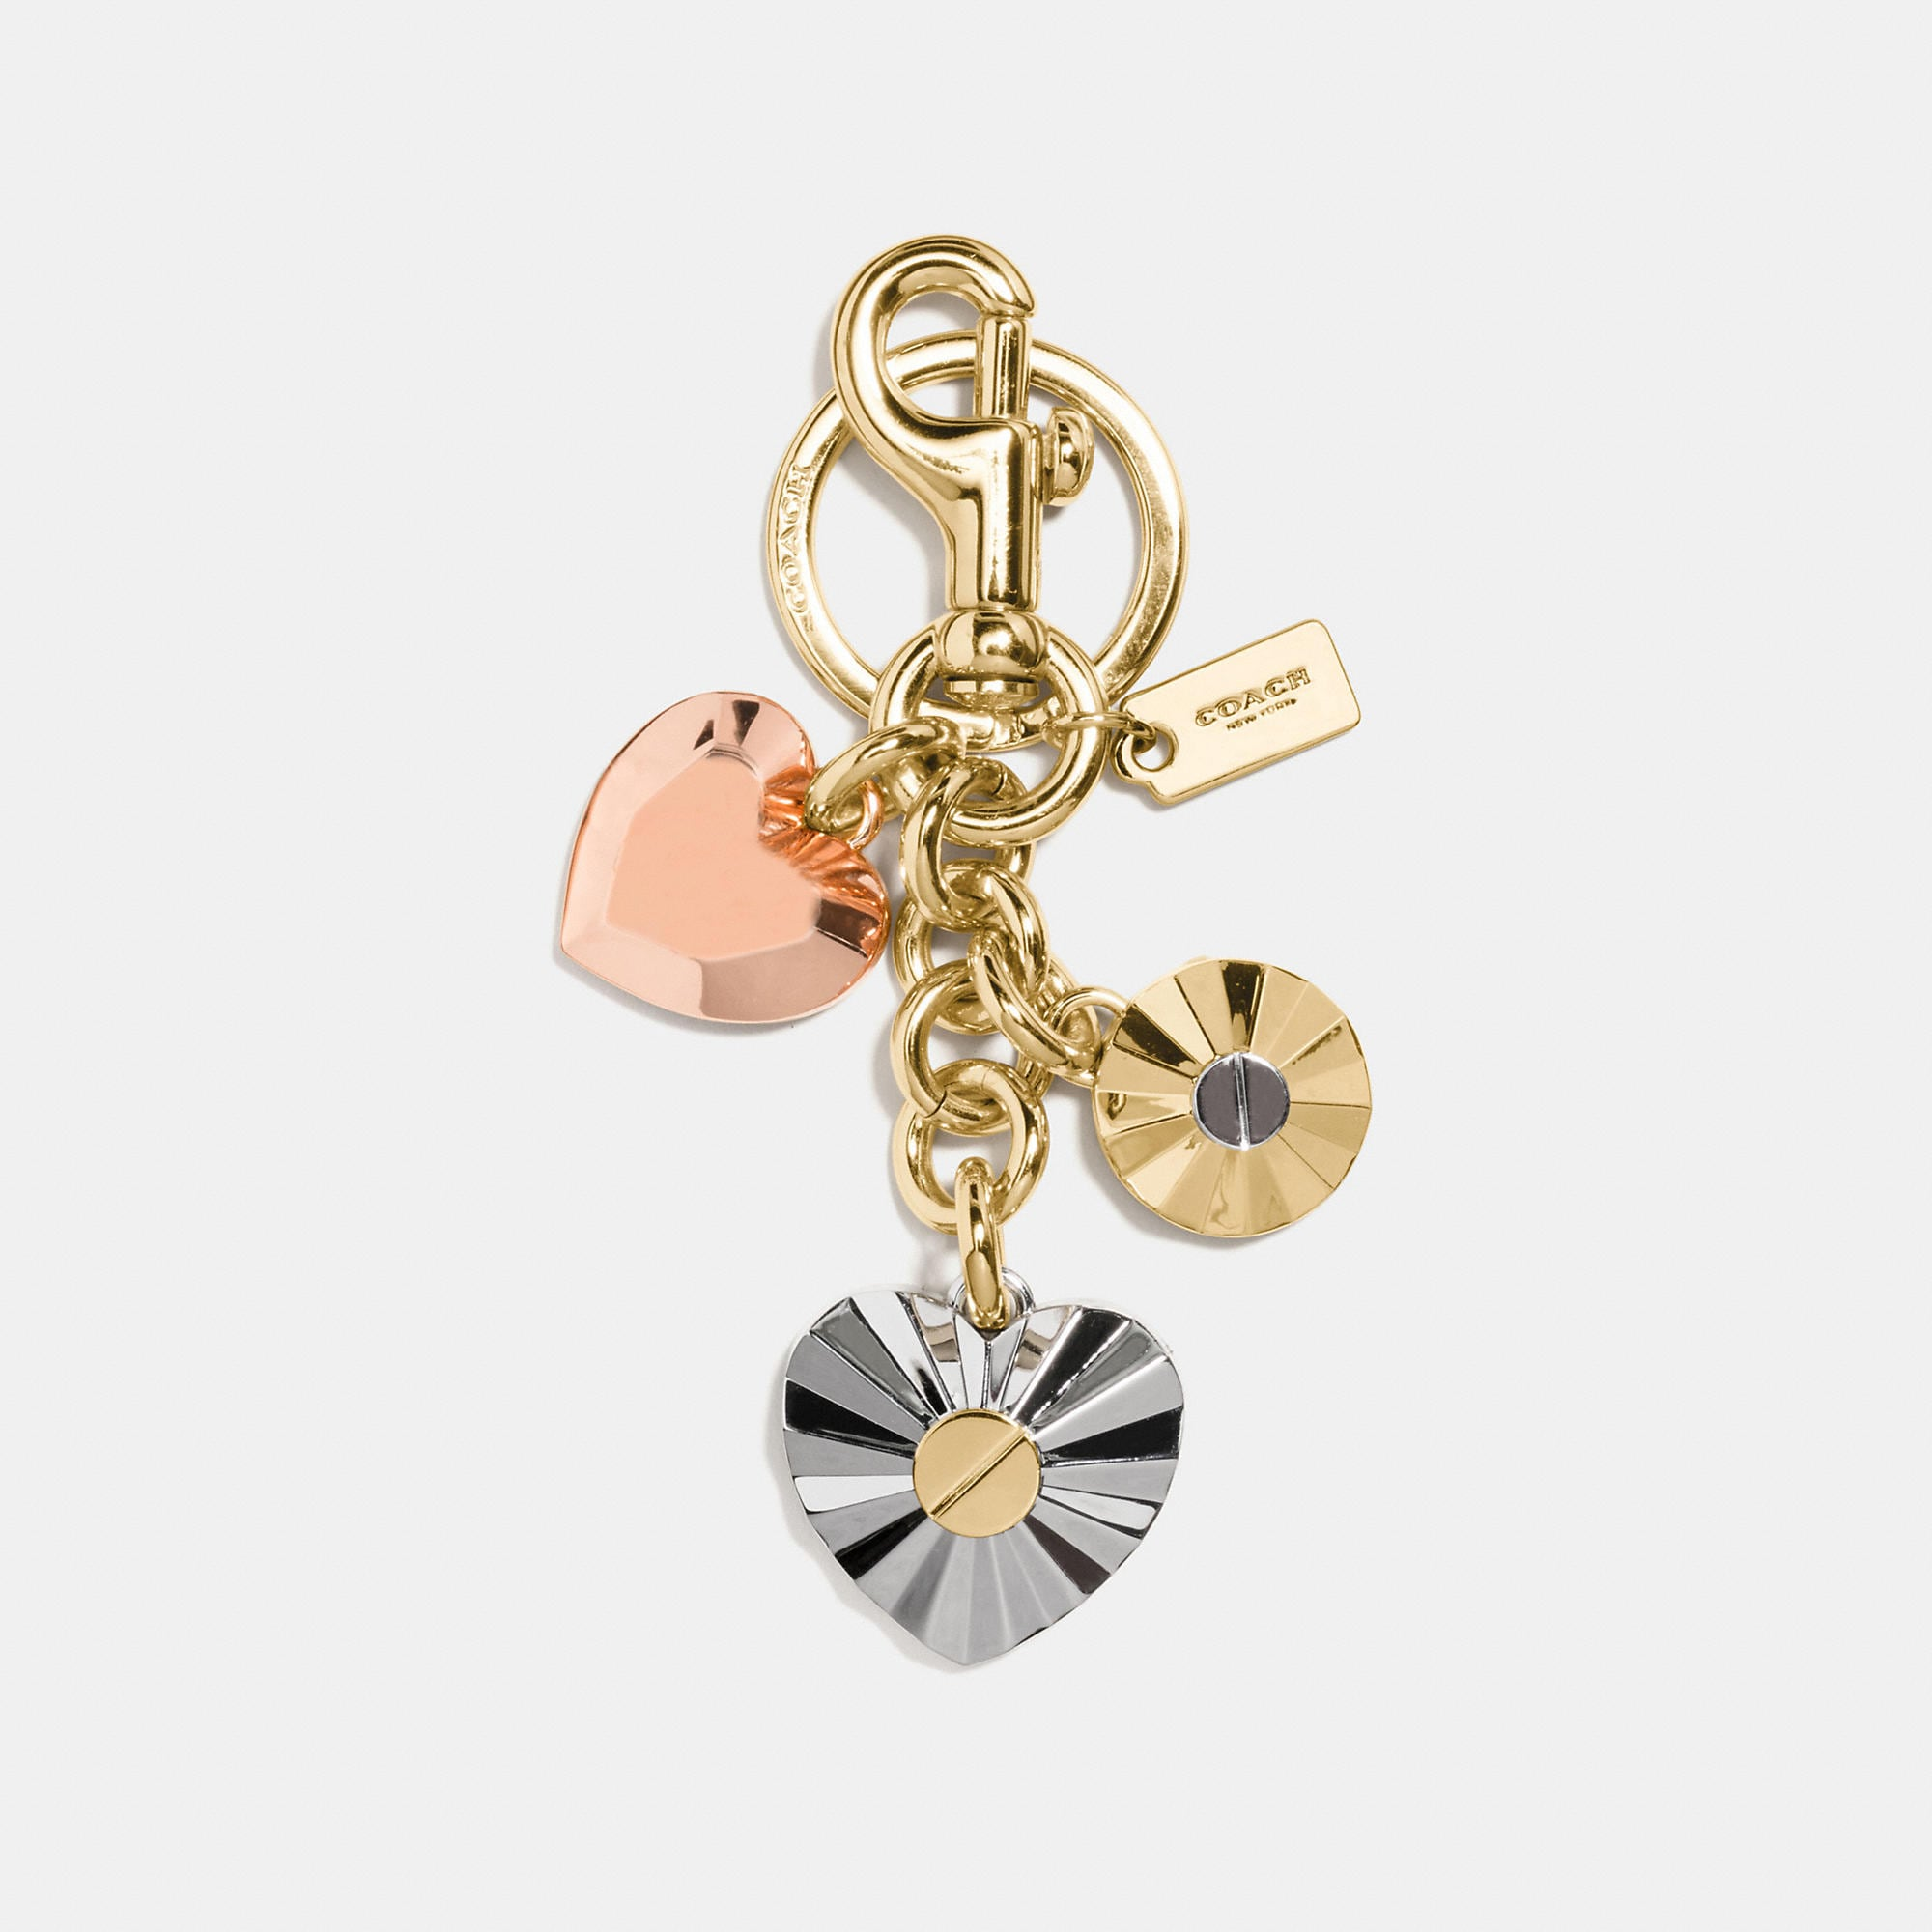 Coach Daisy Rivet Heart Locket Bag Charm